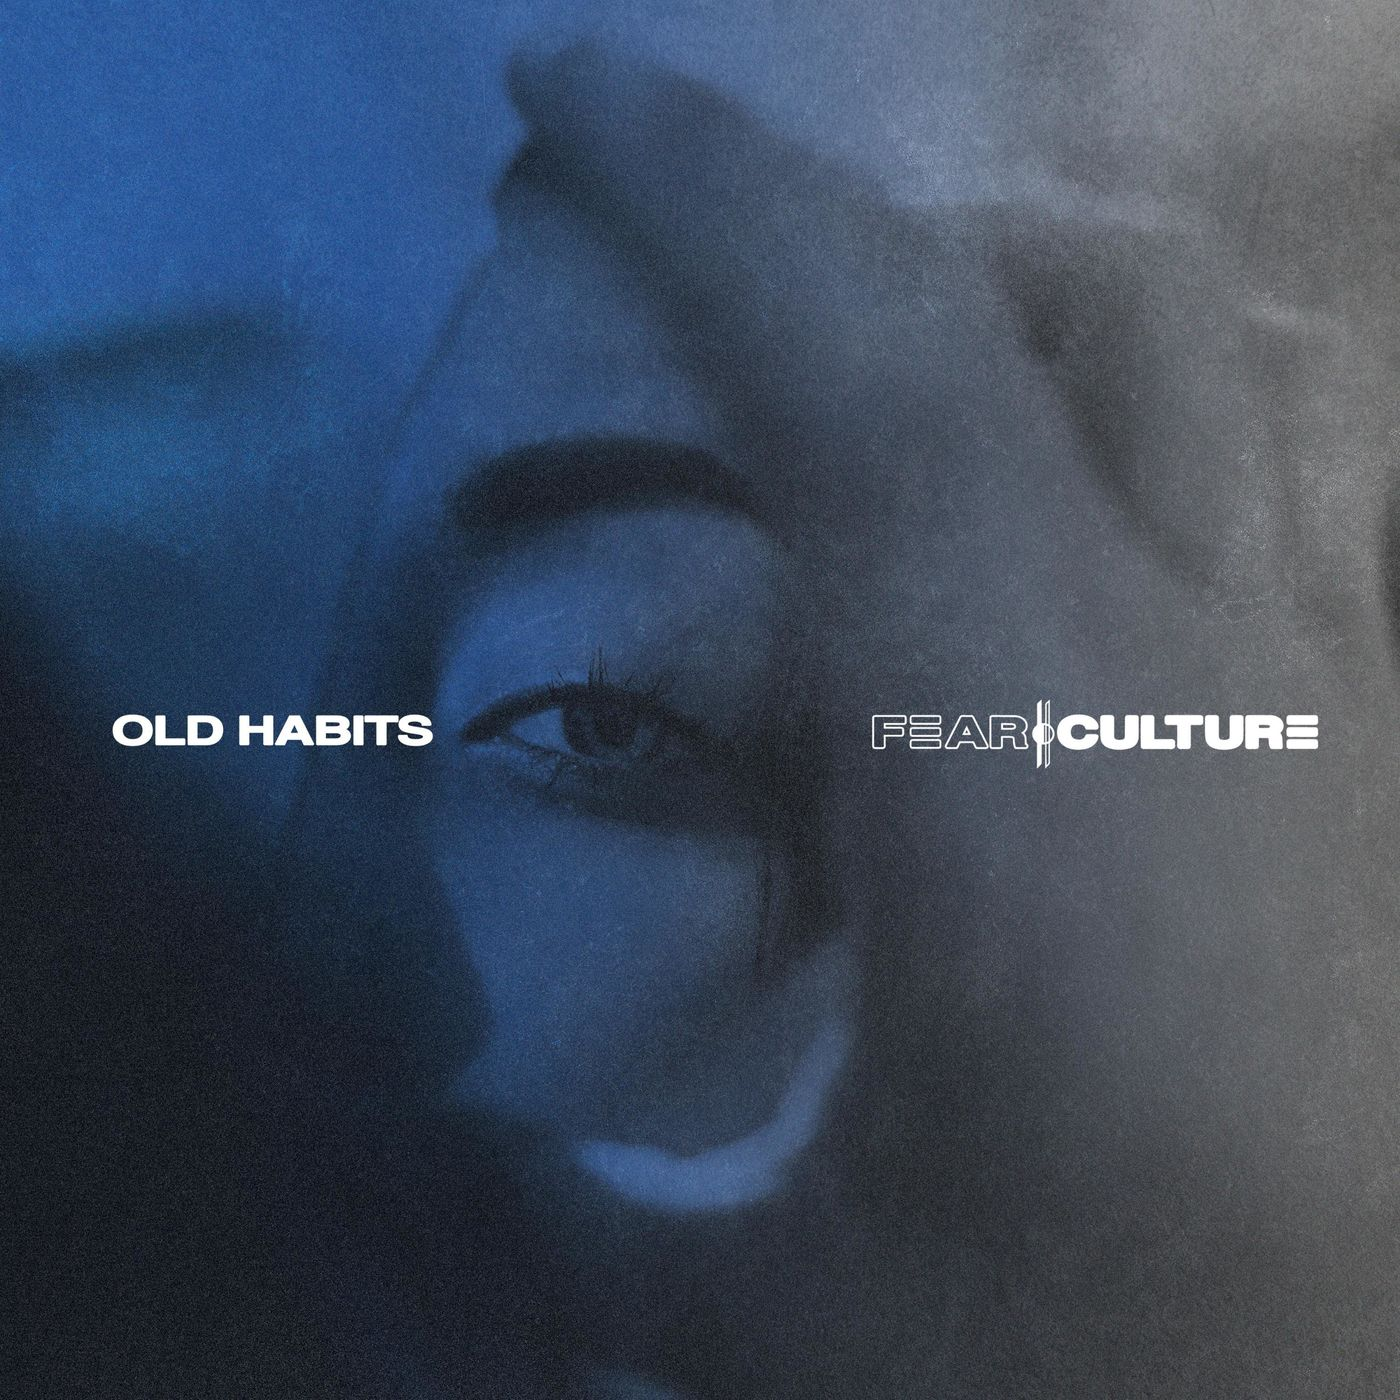 Fear Culture - Old Habits [single] (2020)